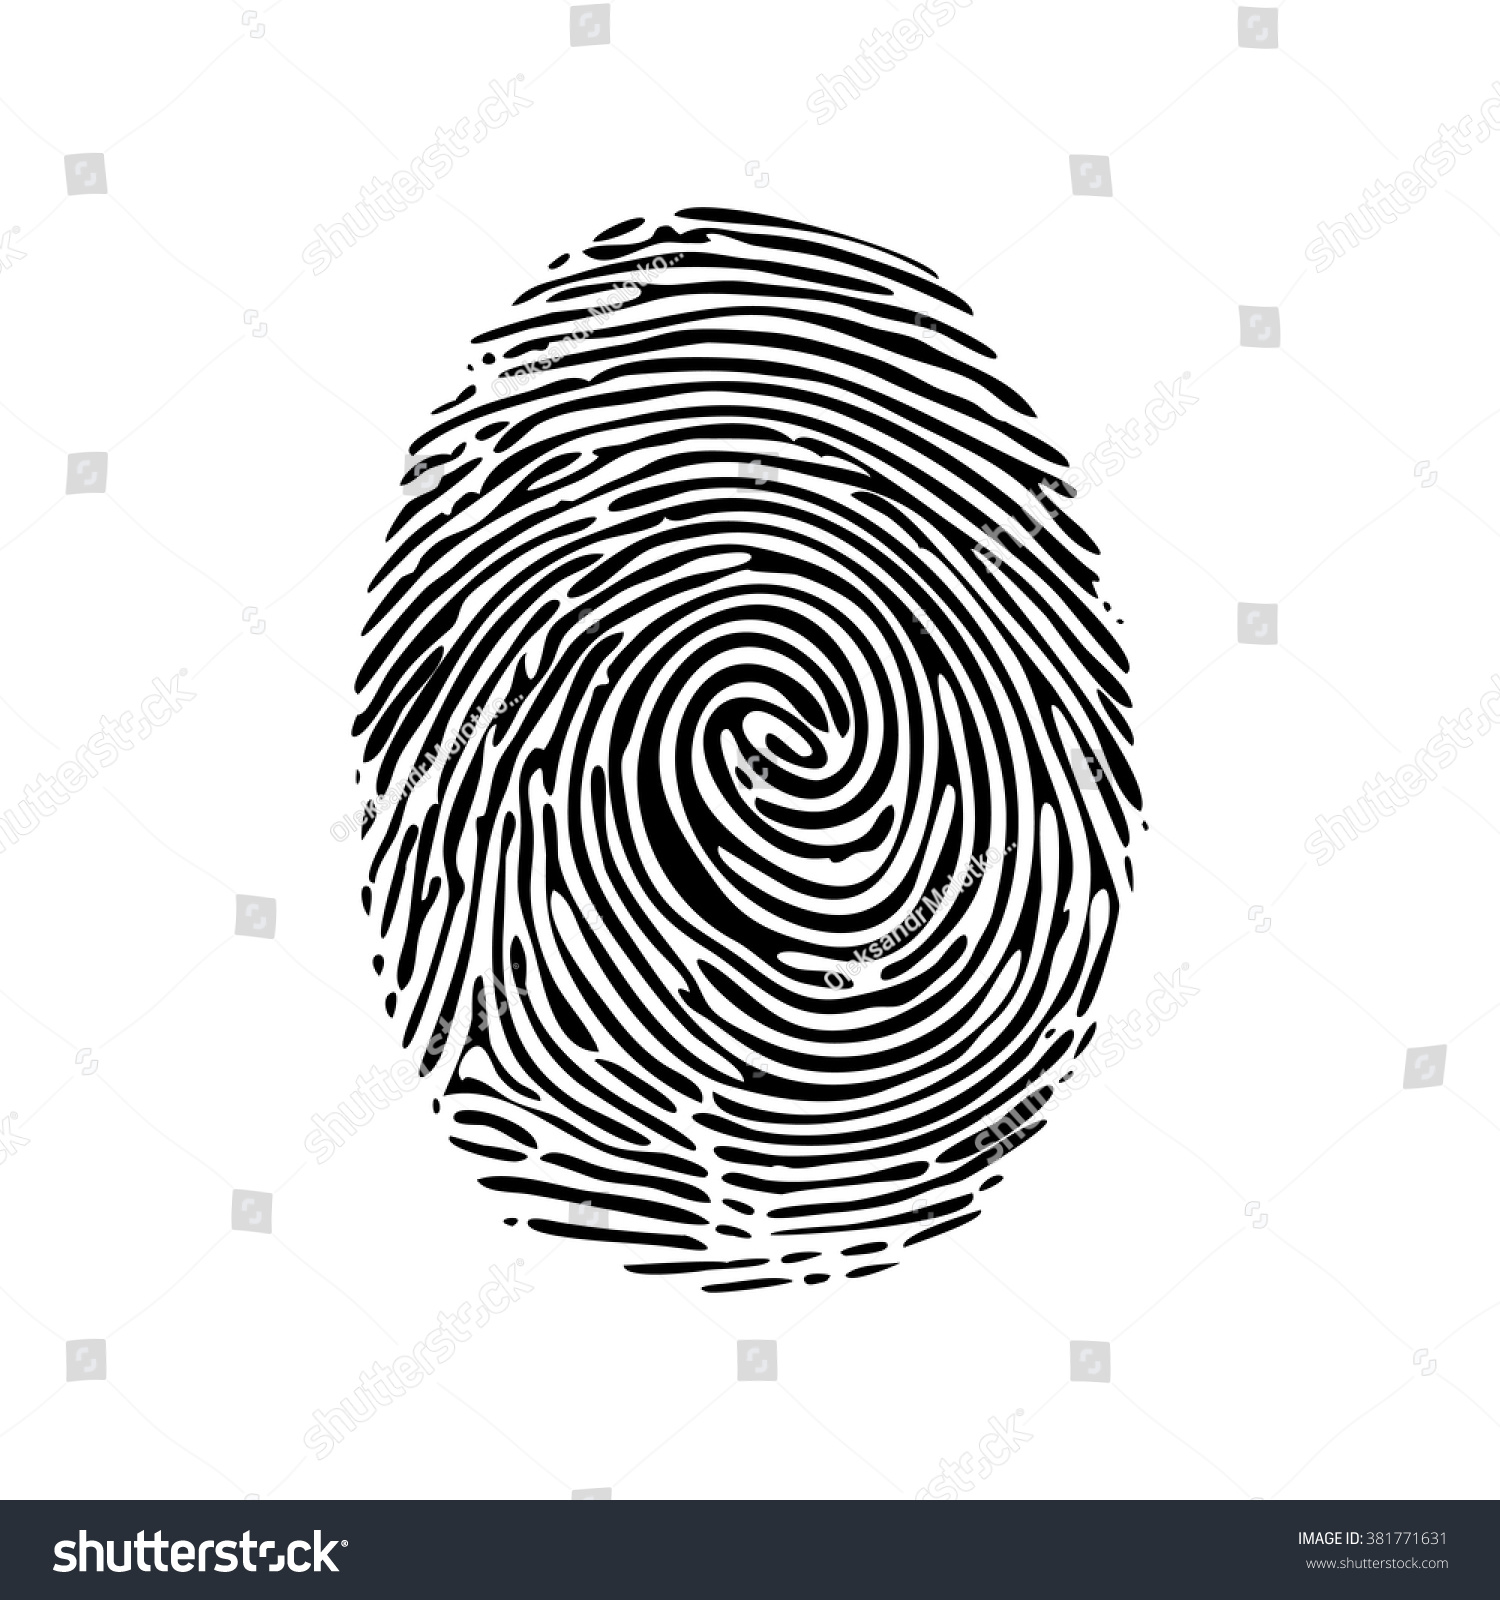 Realistic fingerprint isolated on a white background Fingerprint icon Black fingerprint Vector fingerprint Isolated on white